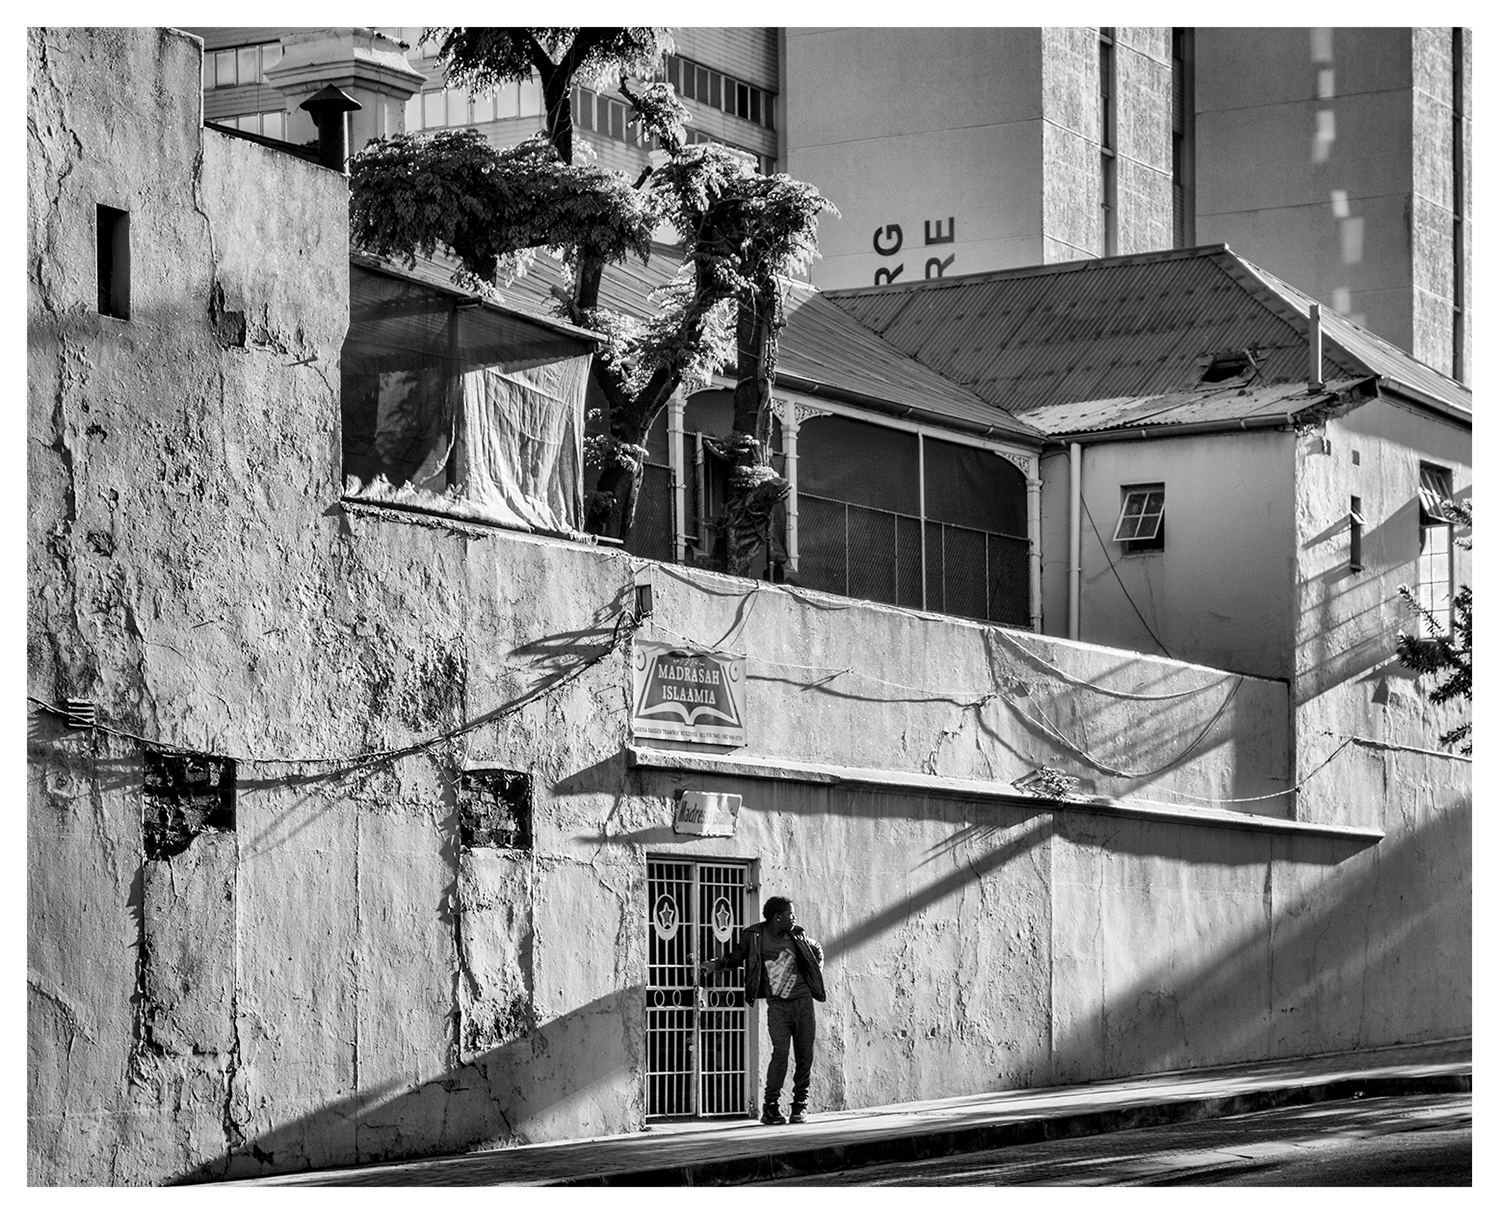 Johannesburg, Madrasah, Islam, Street photography, Black and White photography,